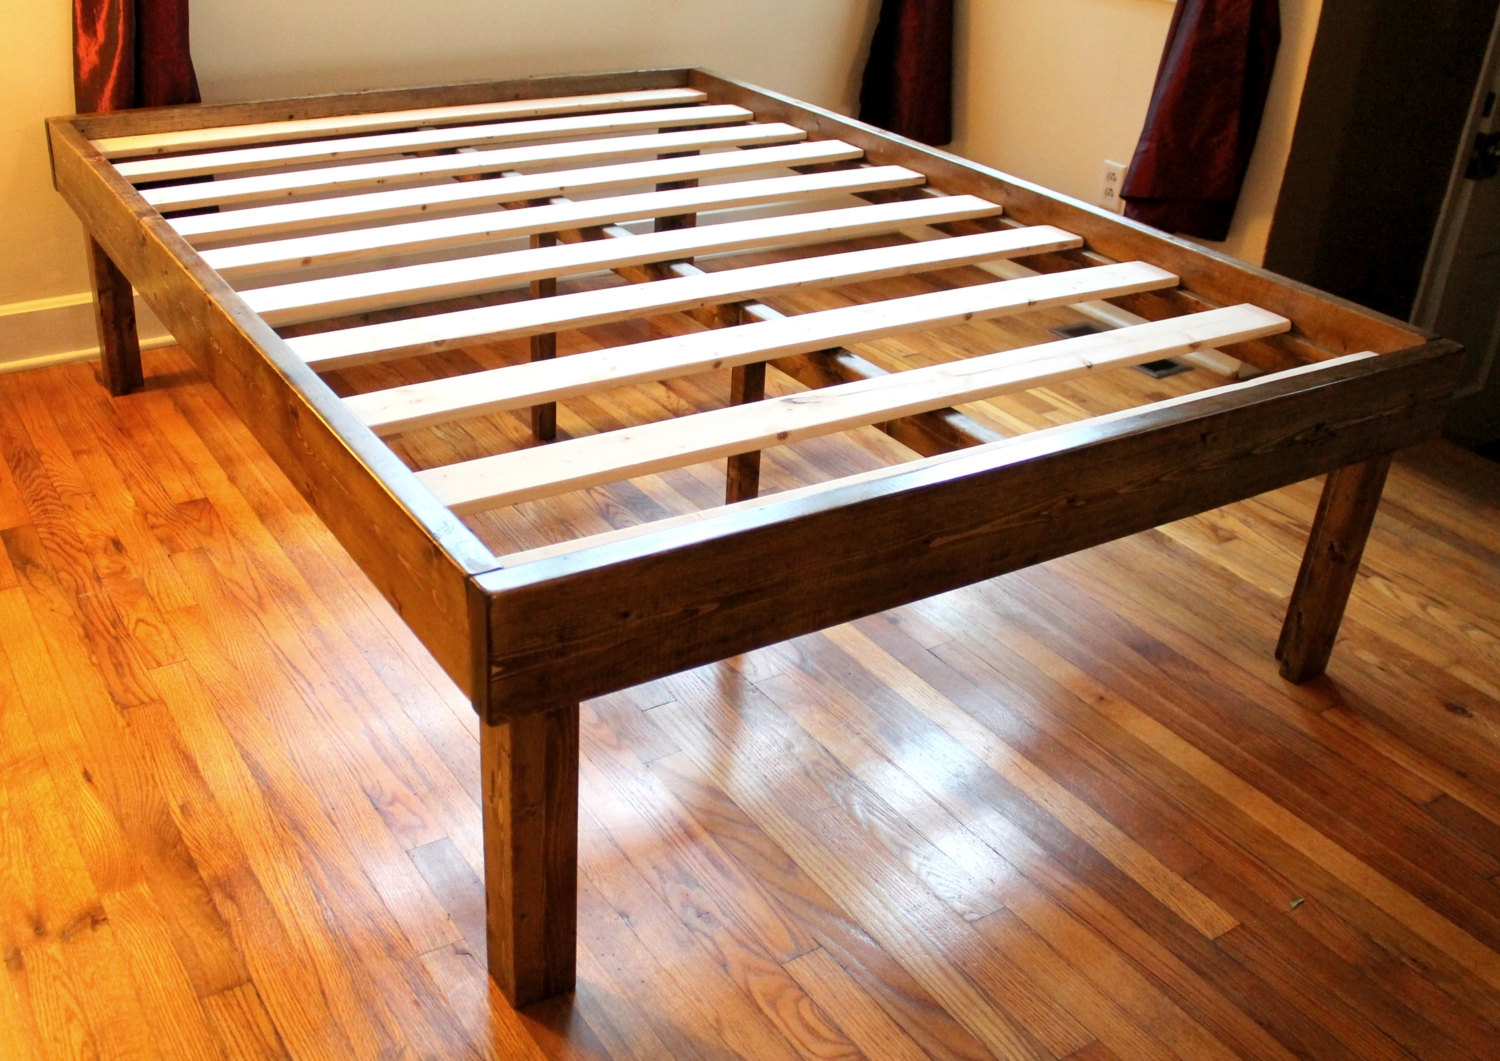 Permalink to Raised Queen Platform Bed Frame